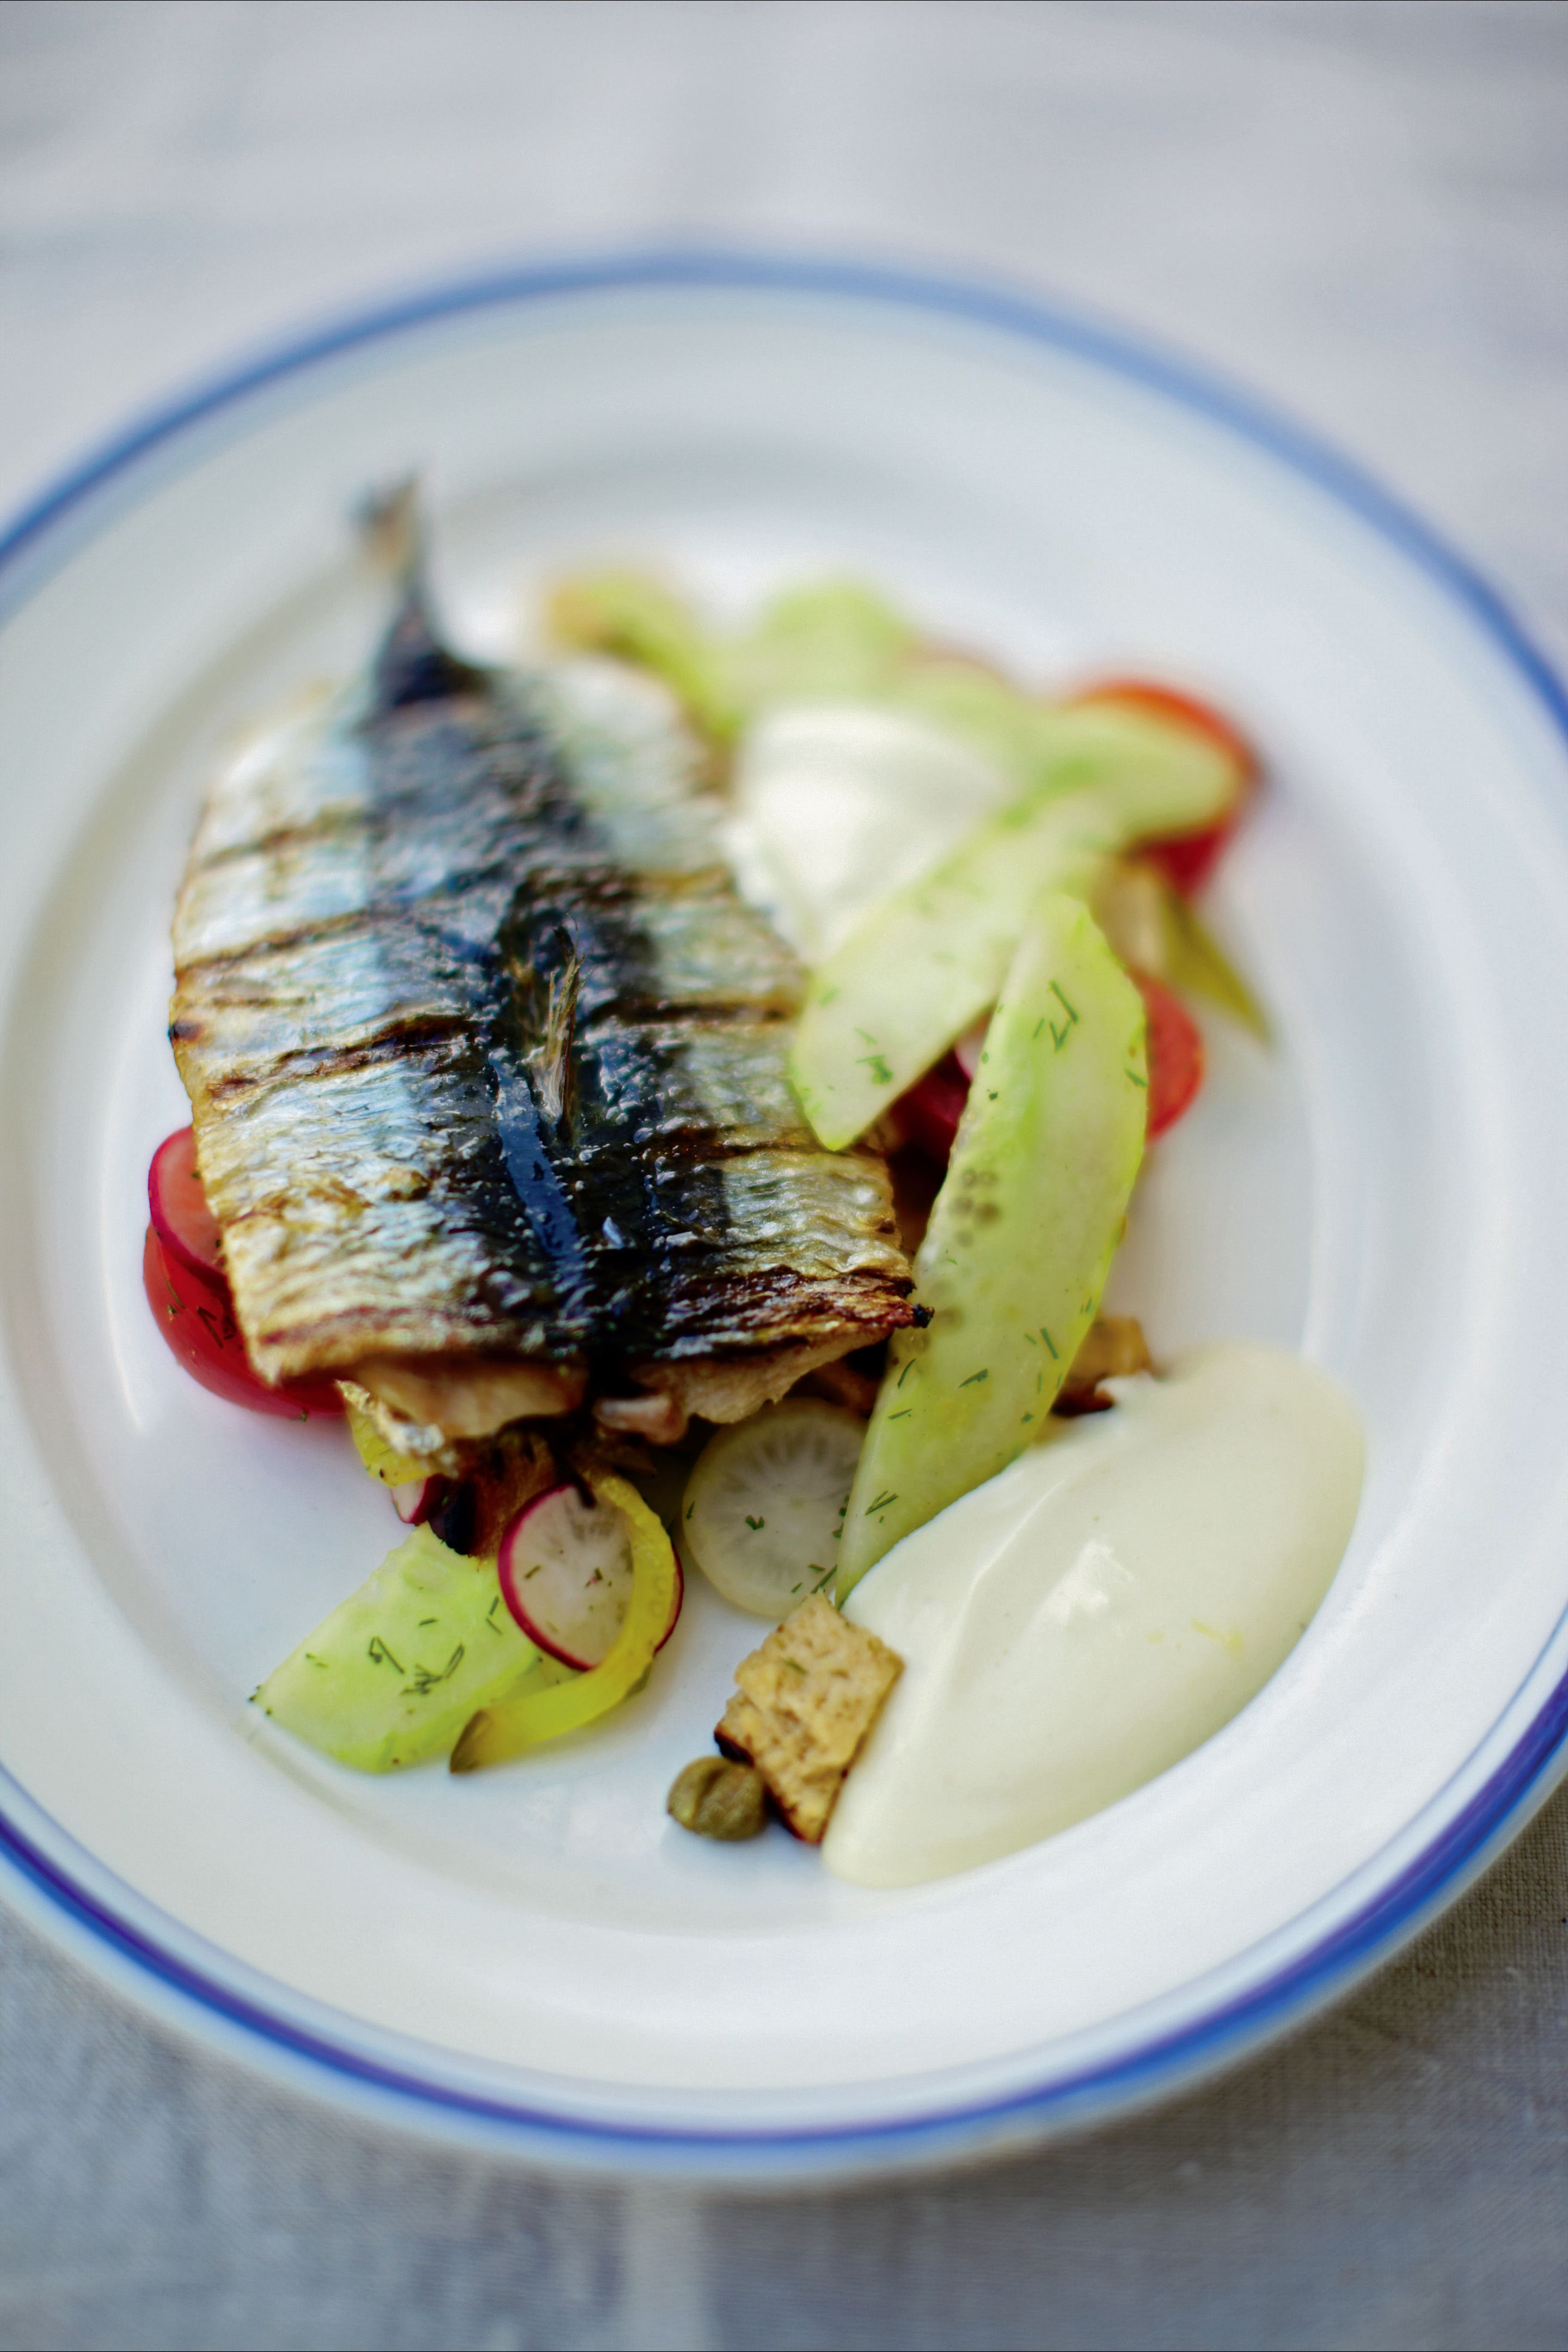 Barbecued sardines with brown bread salad and salad cream